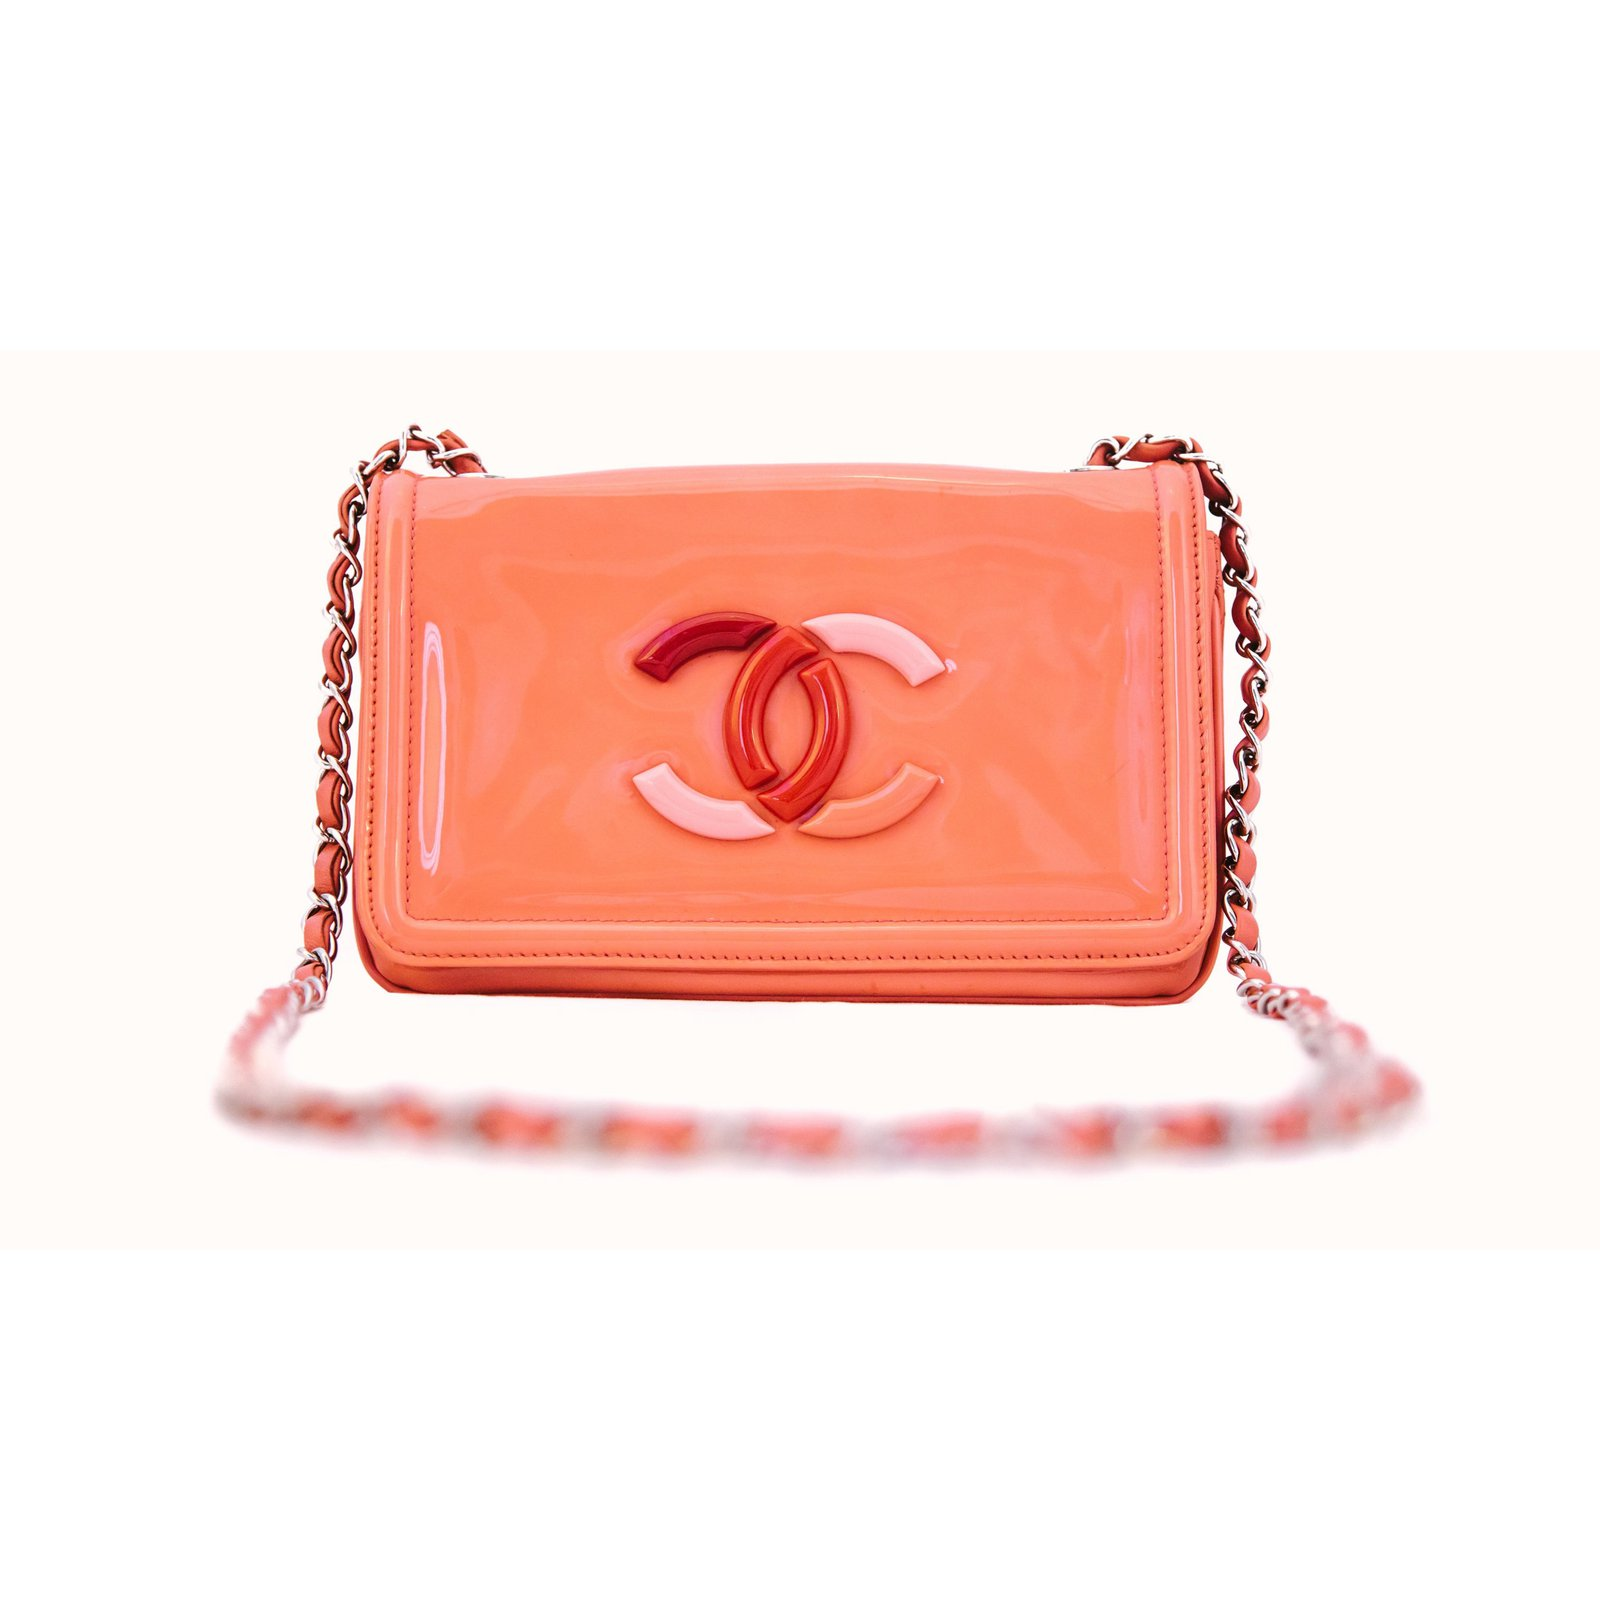 de5795cd2ffc Chanel vinyl lipstick Handbags Patent leather Orange ref.71570 ...